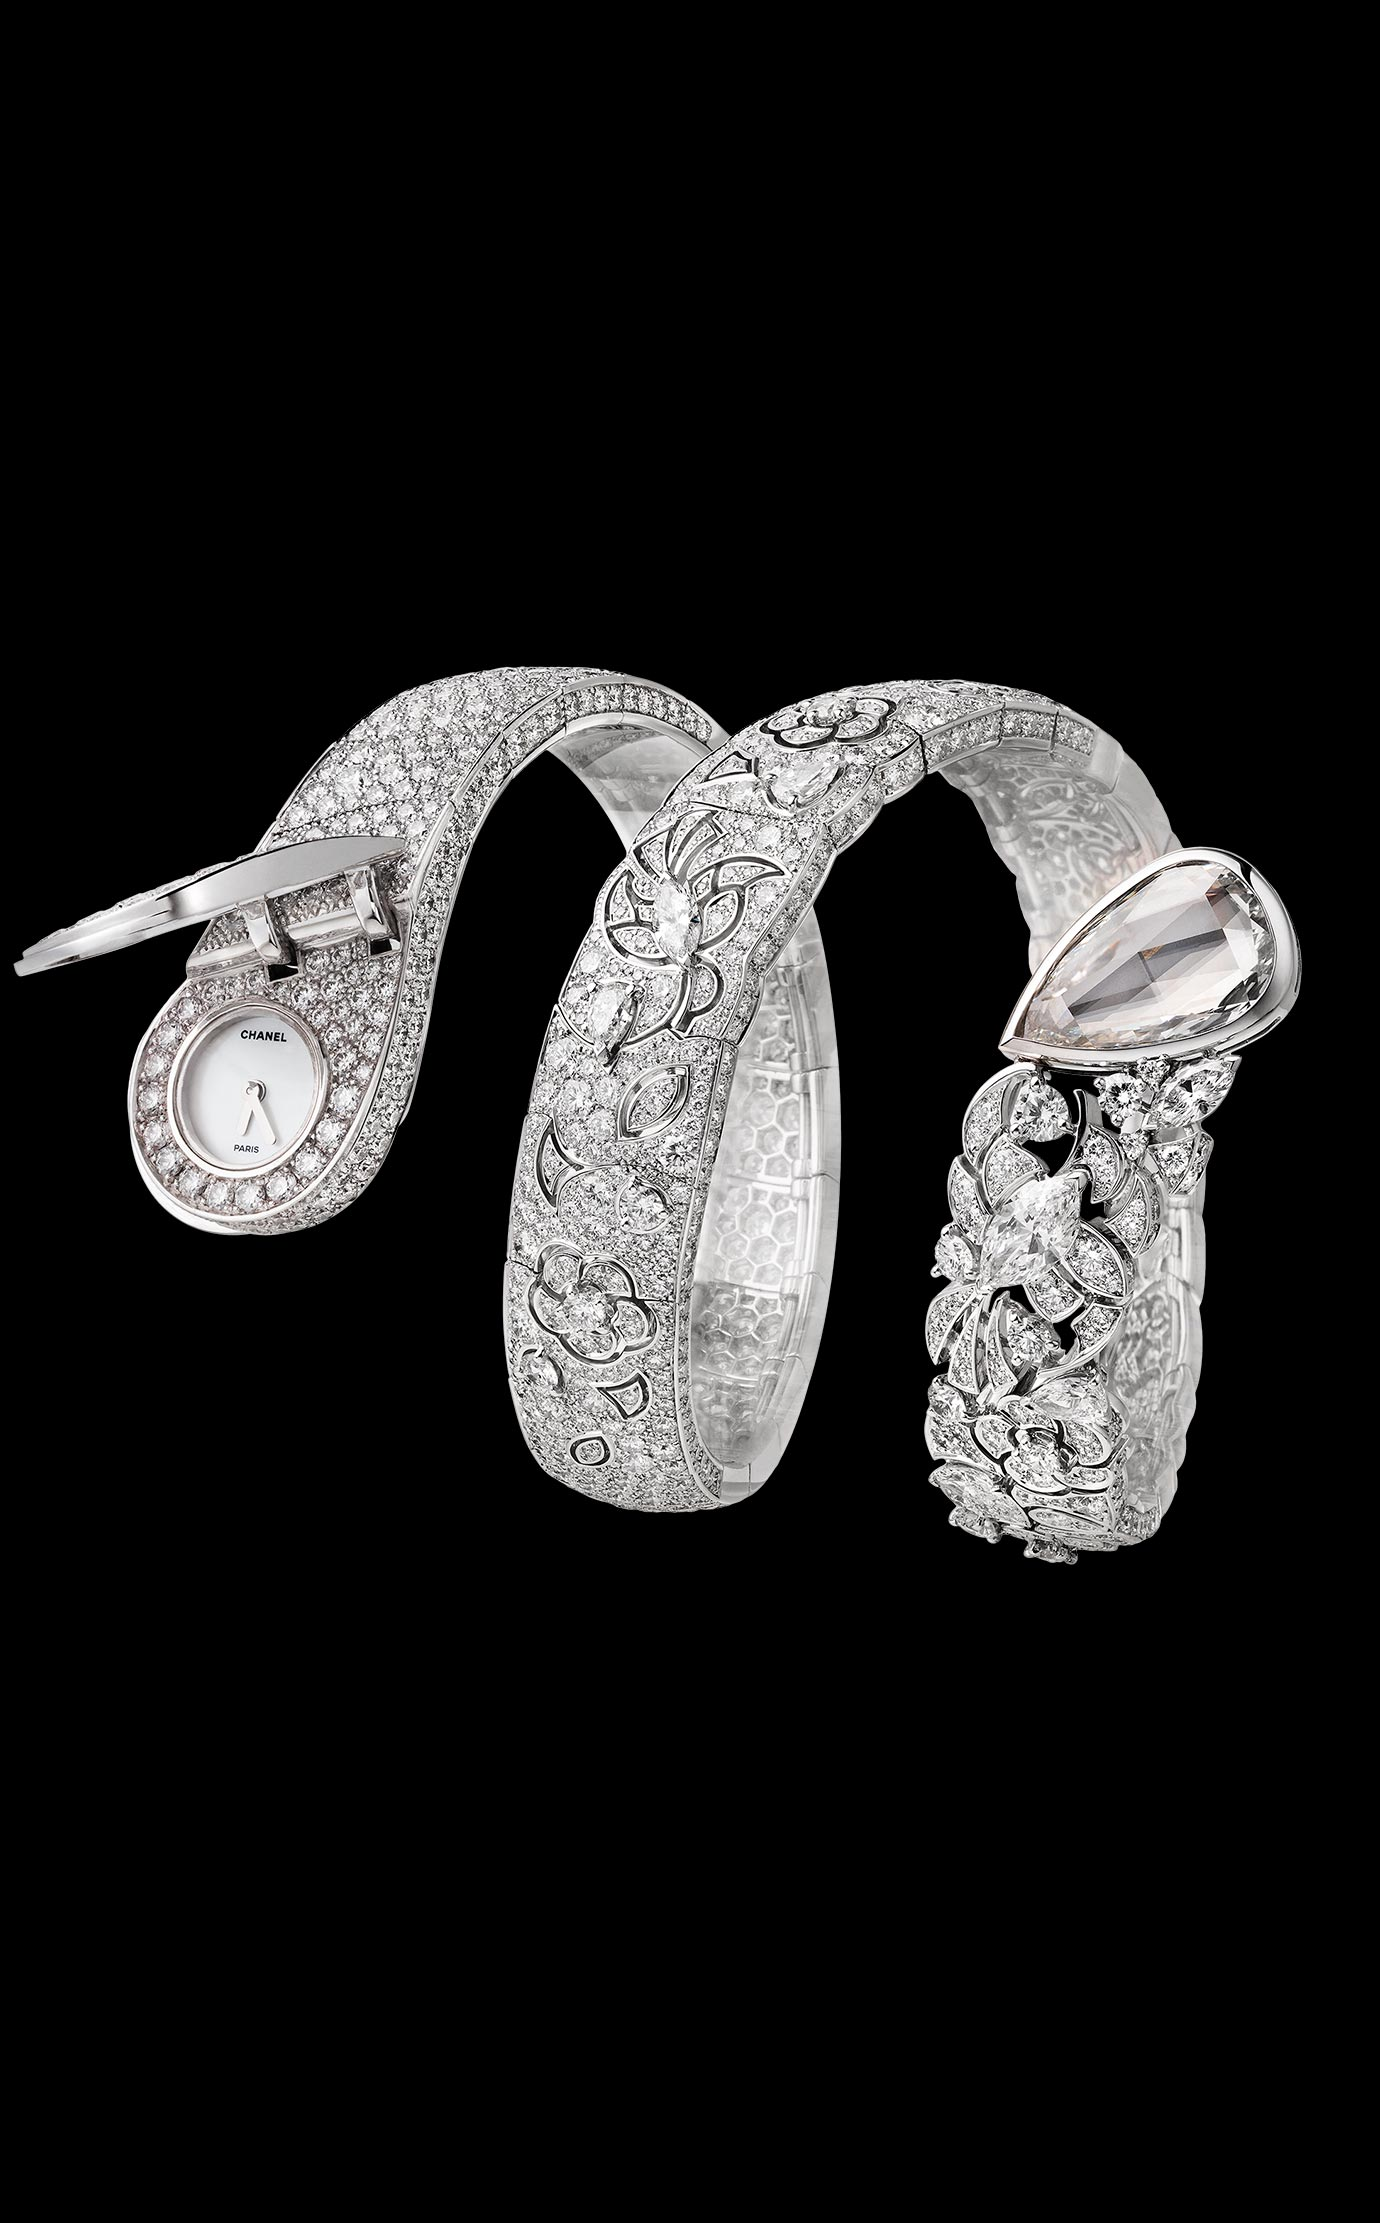 """The """"Ruban"""" watch is evolving ever so freely with a new version that wraps around the wrist. This delicate lace design watch in 18K gold set with 1,369 diamonds (including seven Fancy-cut diamonds) conceals a hidden watch dial on one side, and a 5-carat pear-cut diamond on the other. - Open"""